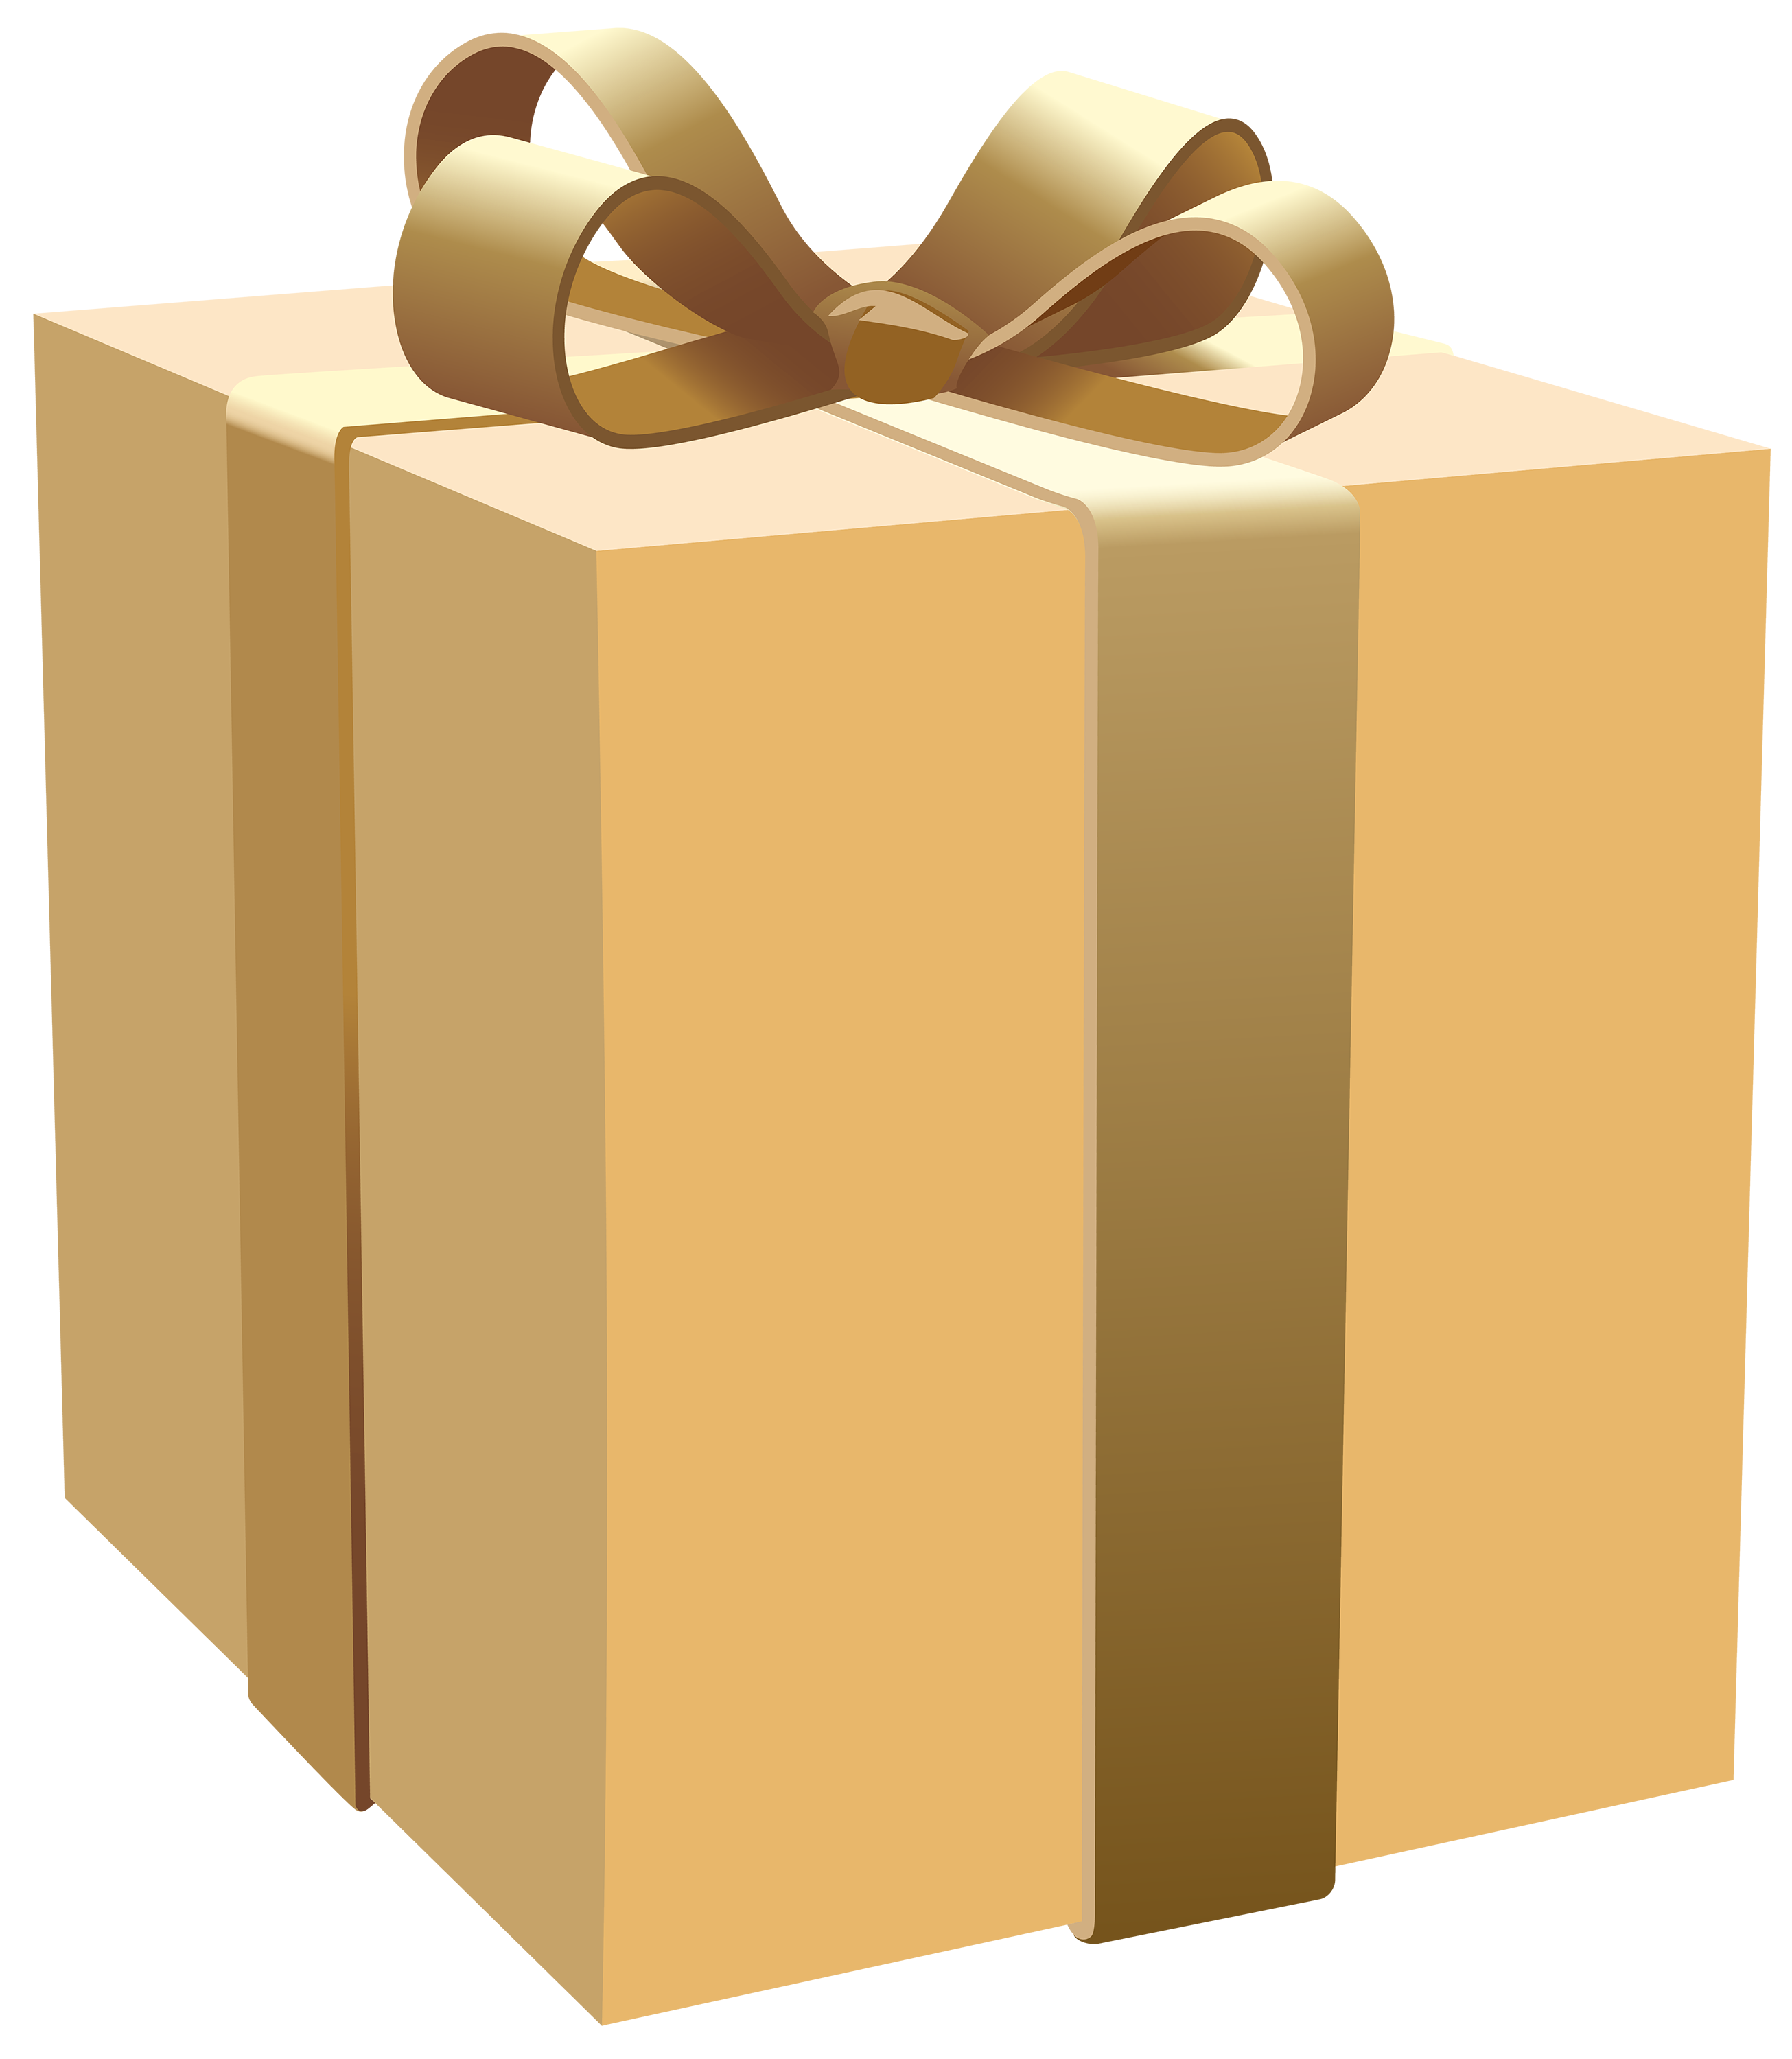 Cream box png best. Gift clipart yellow